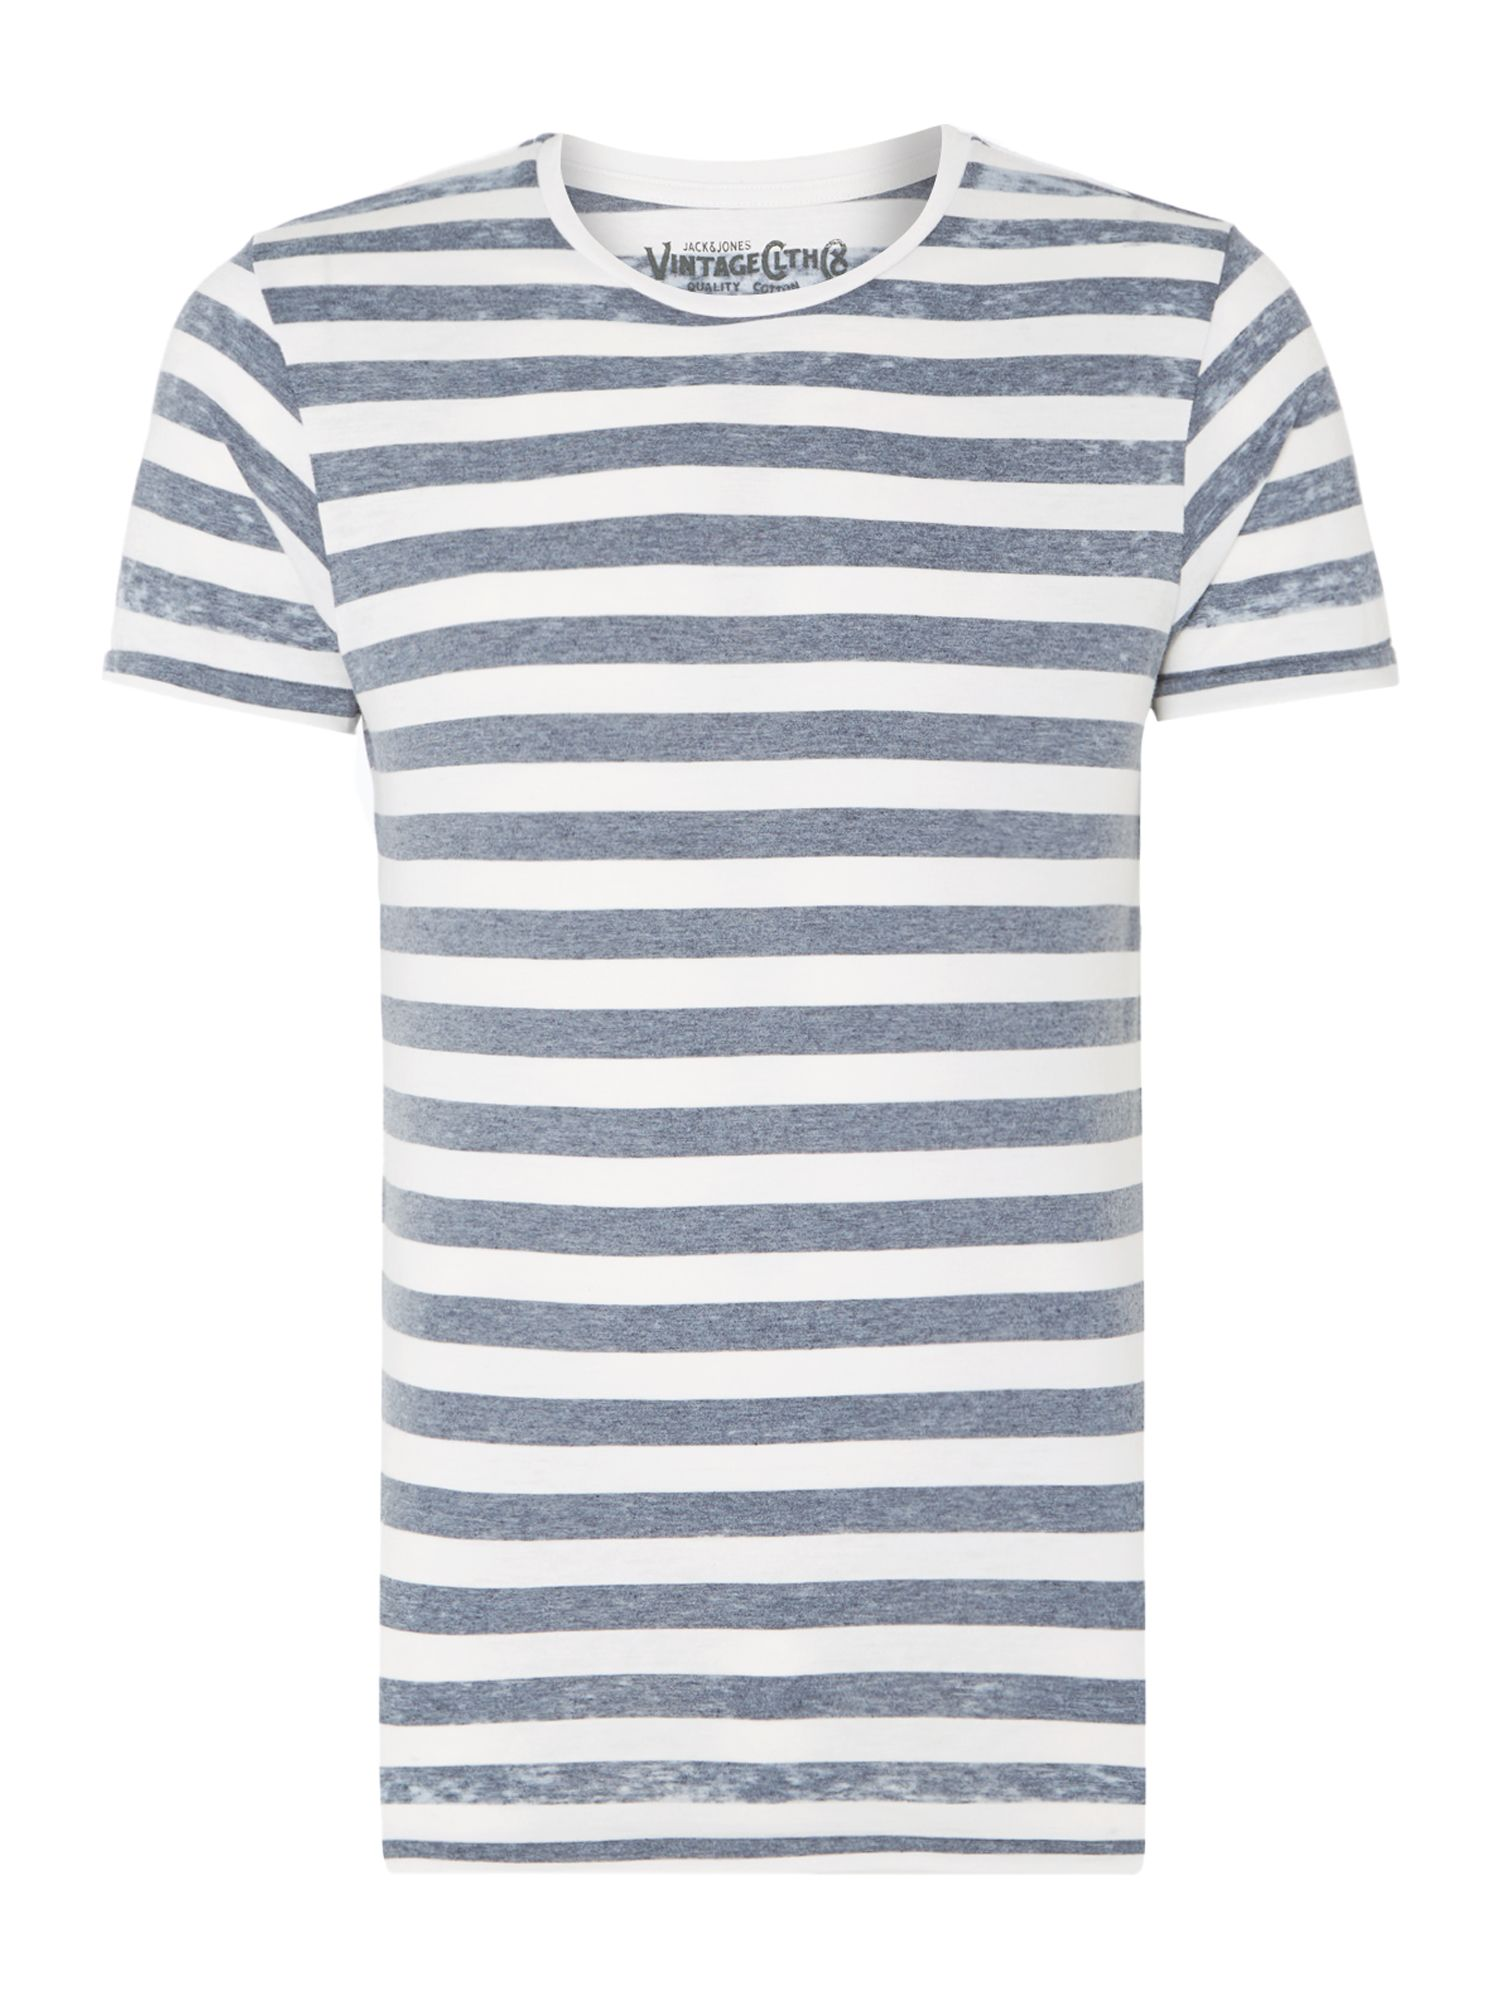 Mens Jack  Jones Mens Narrow Striped Top $15.00 AT vintagedancer.com